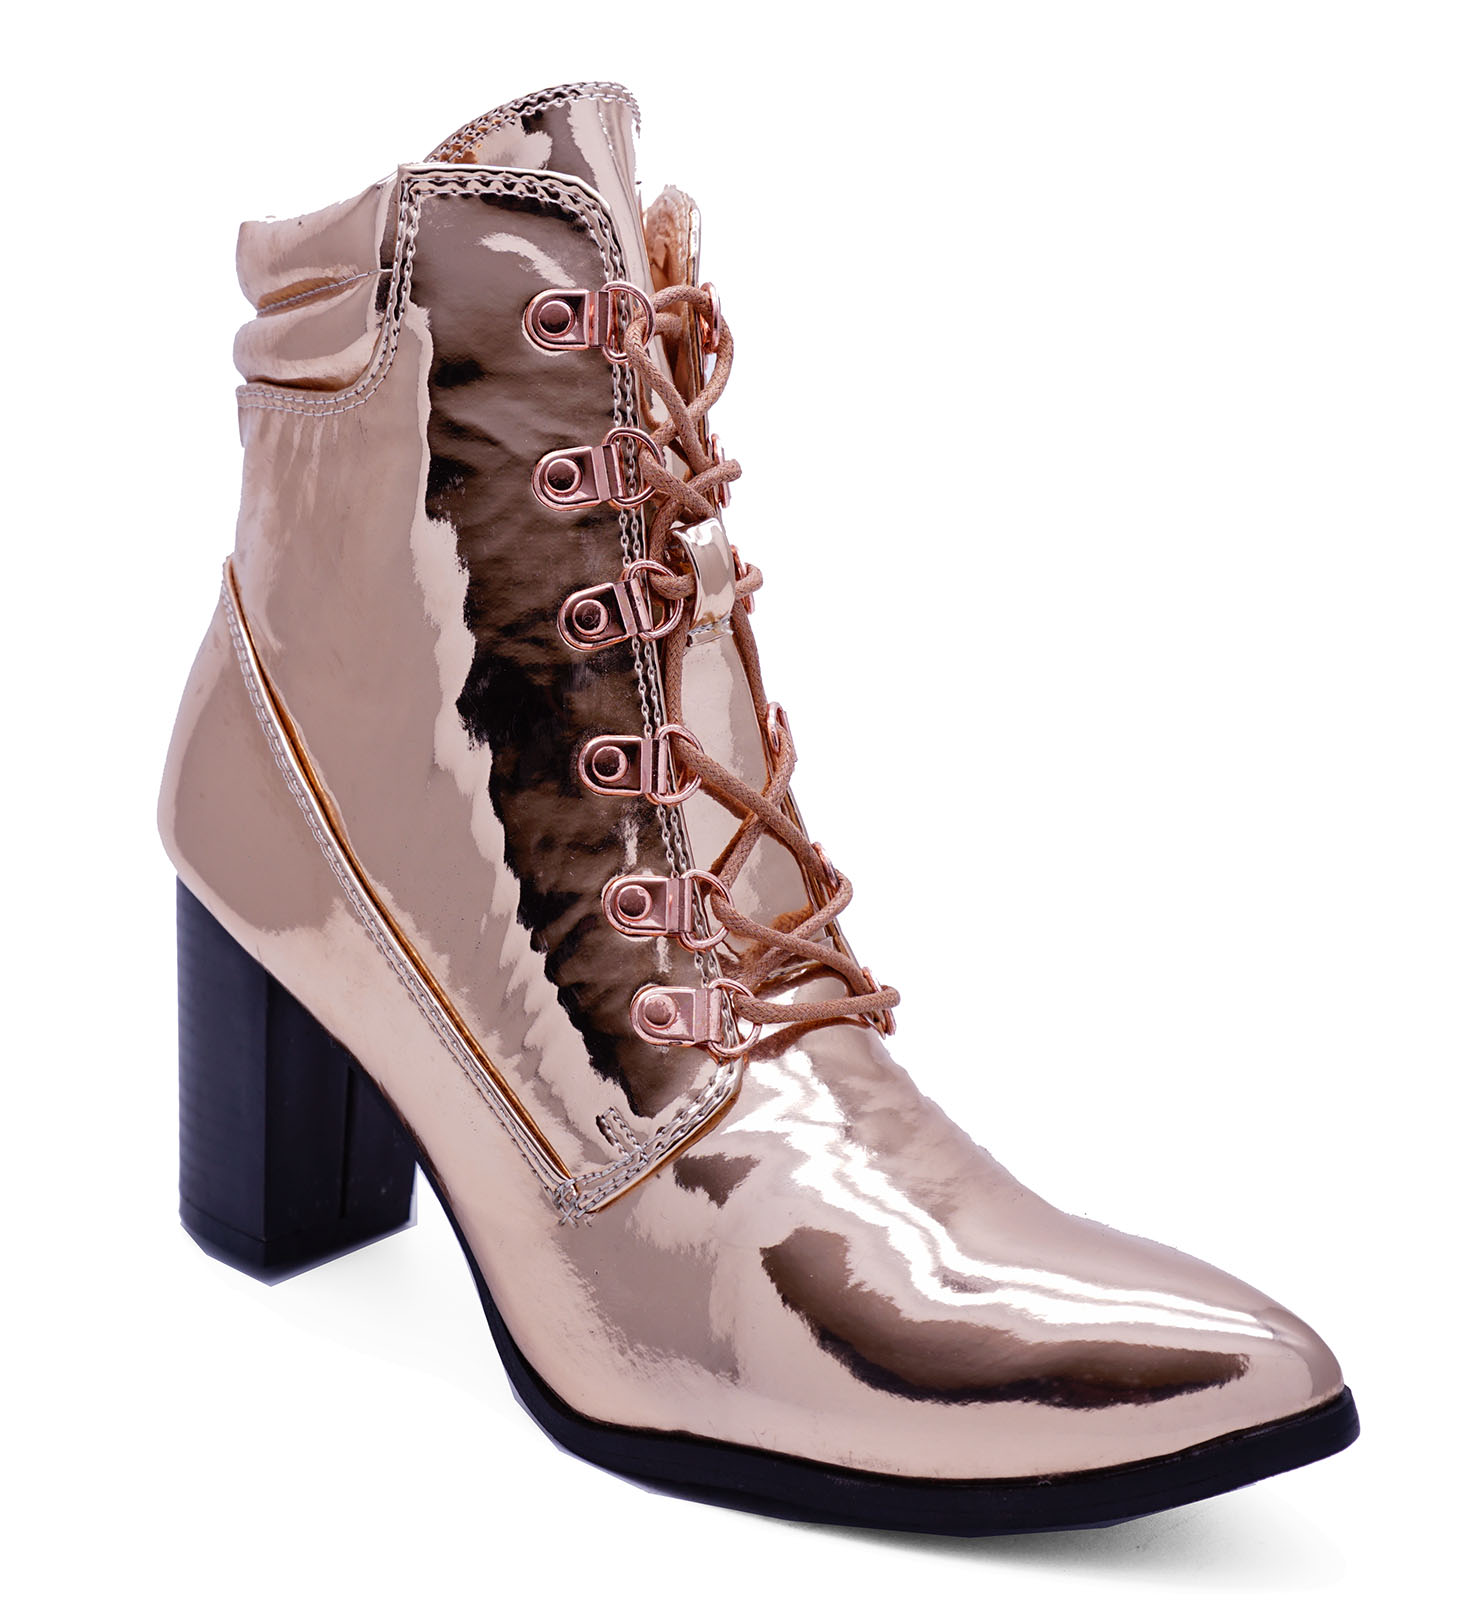 2346a3c32a6ea8 Sentinel WOMENS ROSE GOLD BLOCK-HEEL LACE-UP ANKLE MILITARY POINTY BOOTS SHOES  SIZES 3